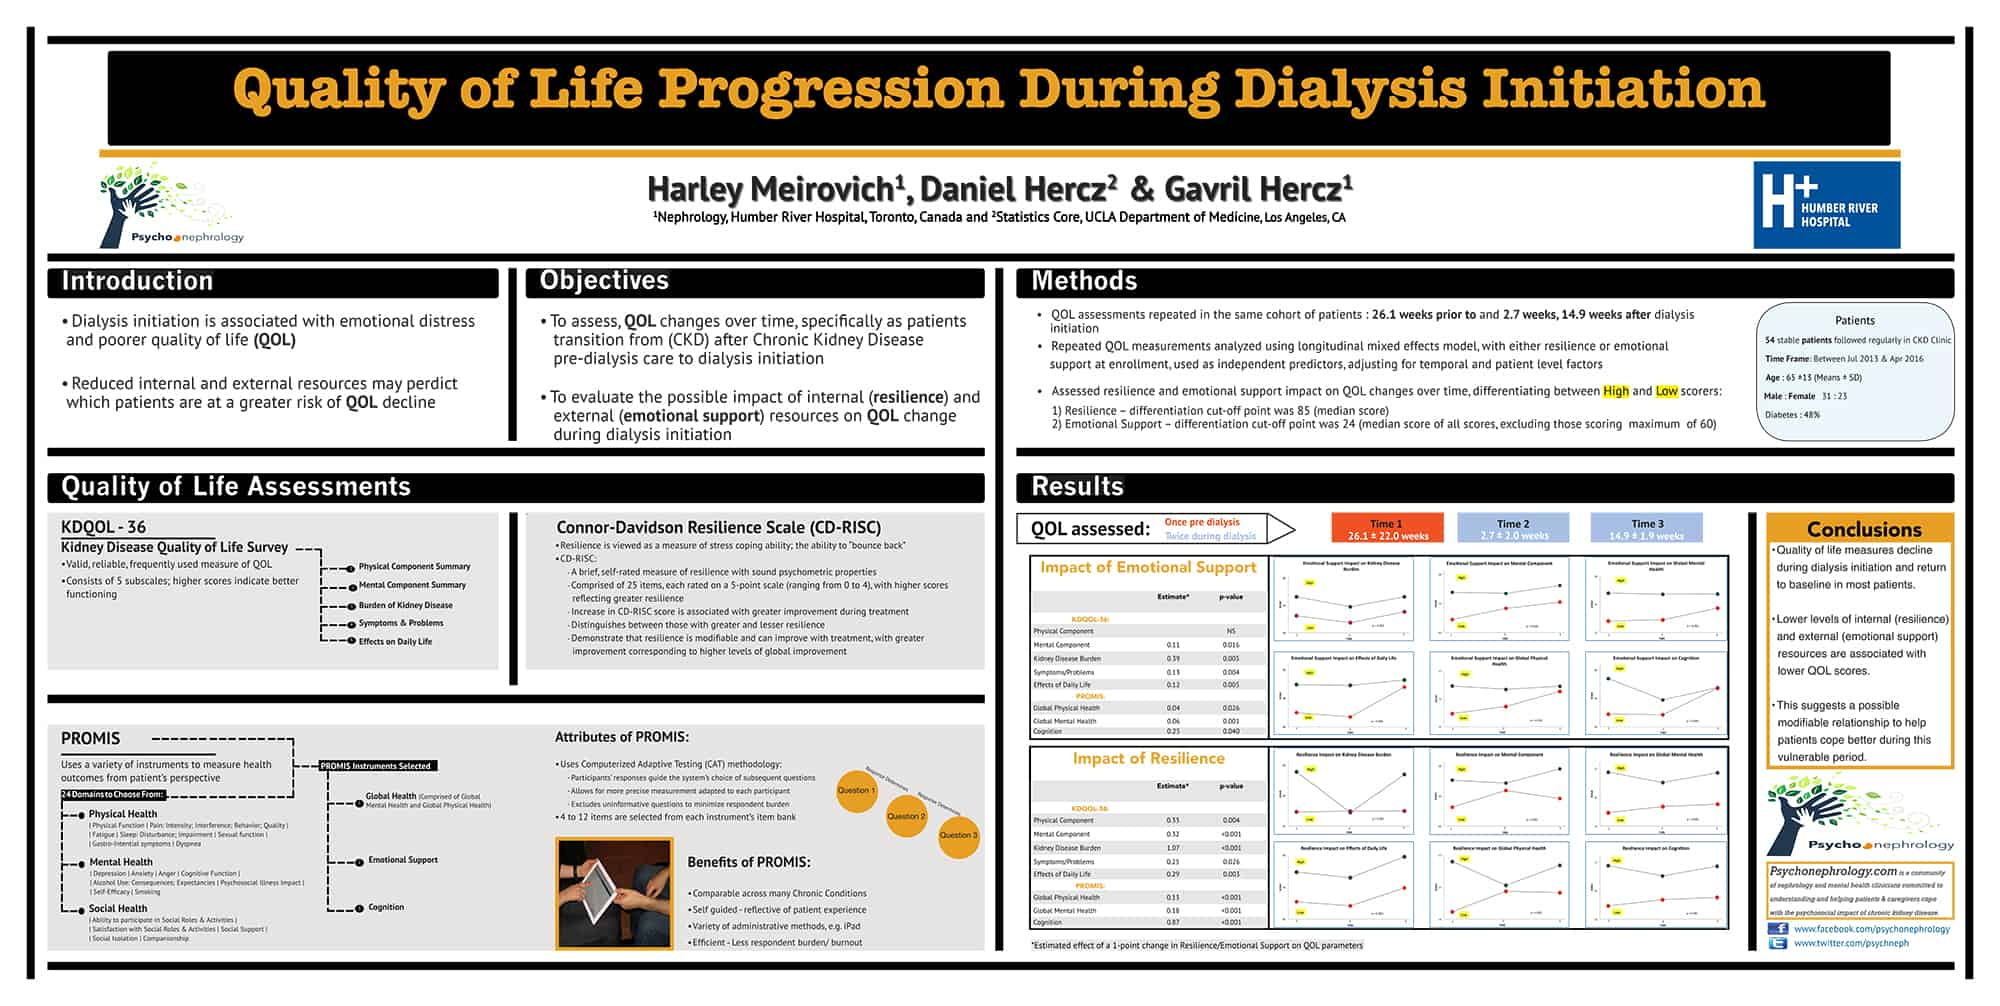 Quality of Life Progression during Dialysis Initiation